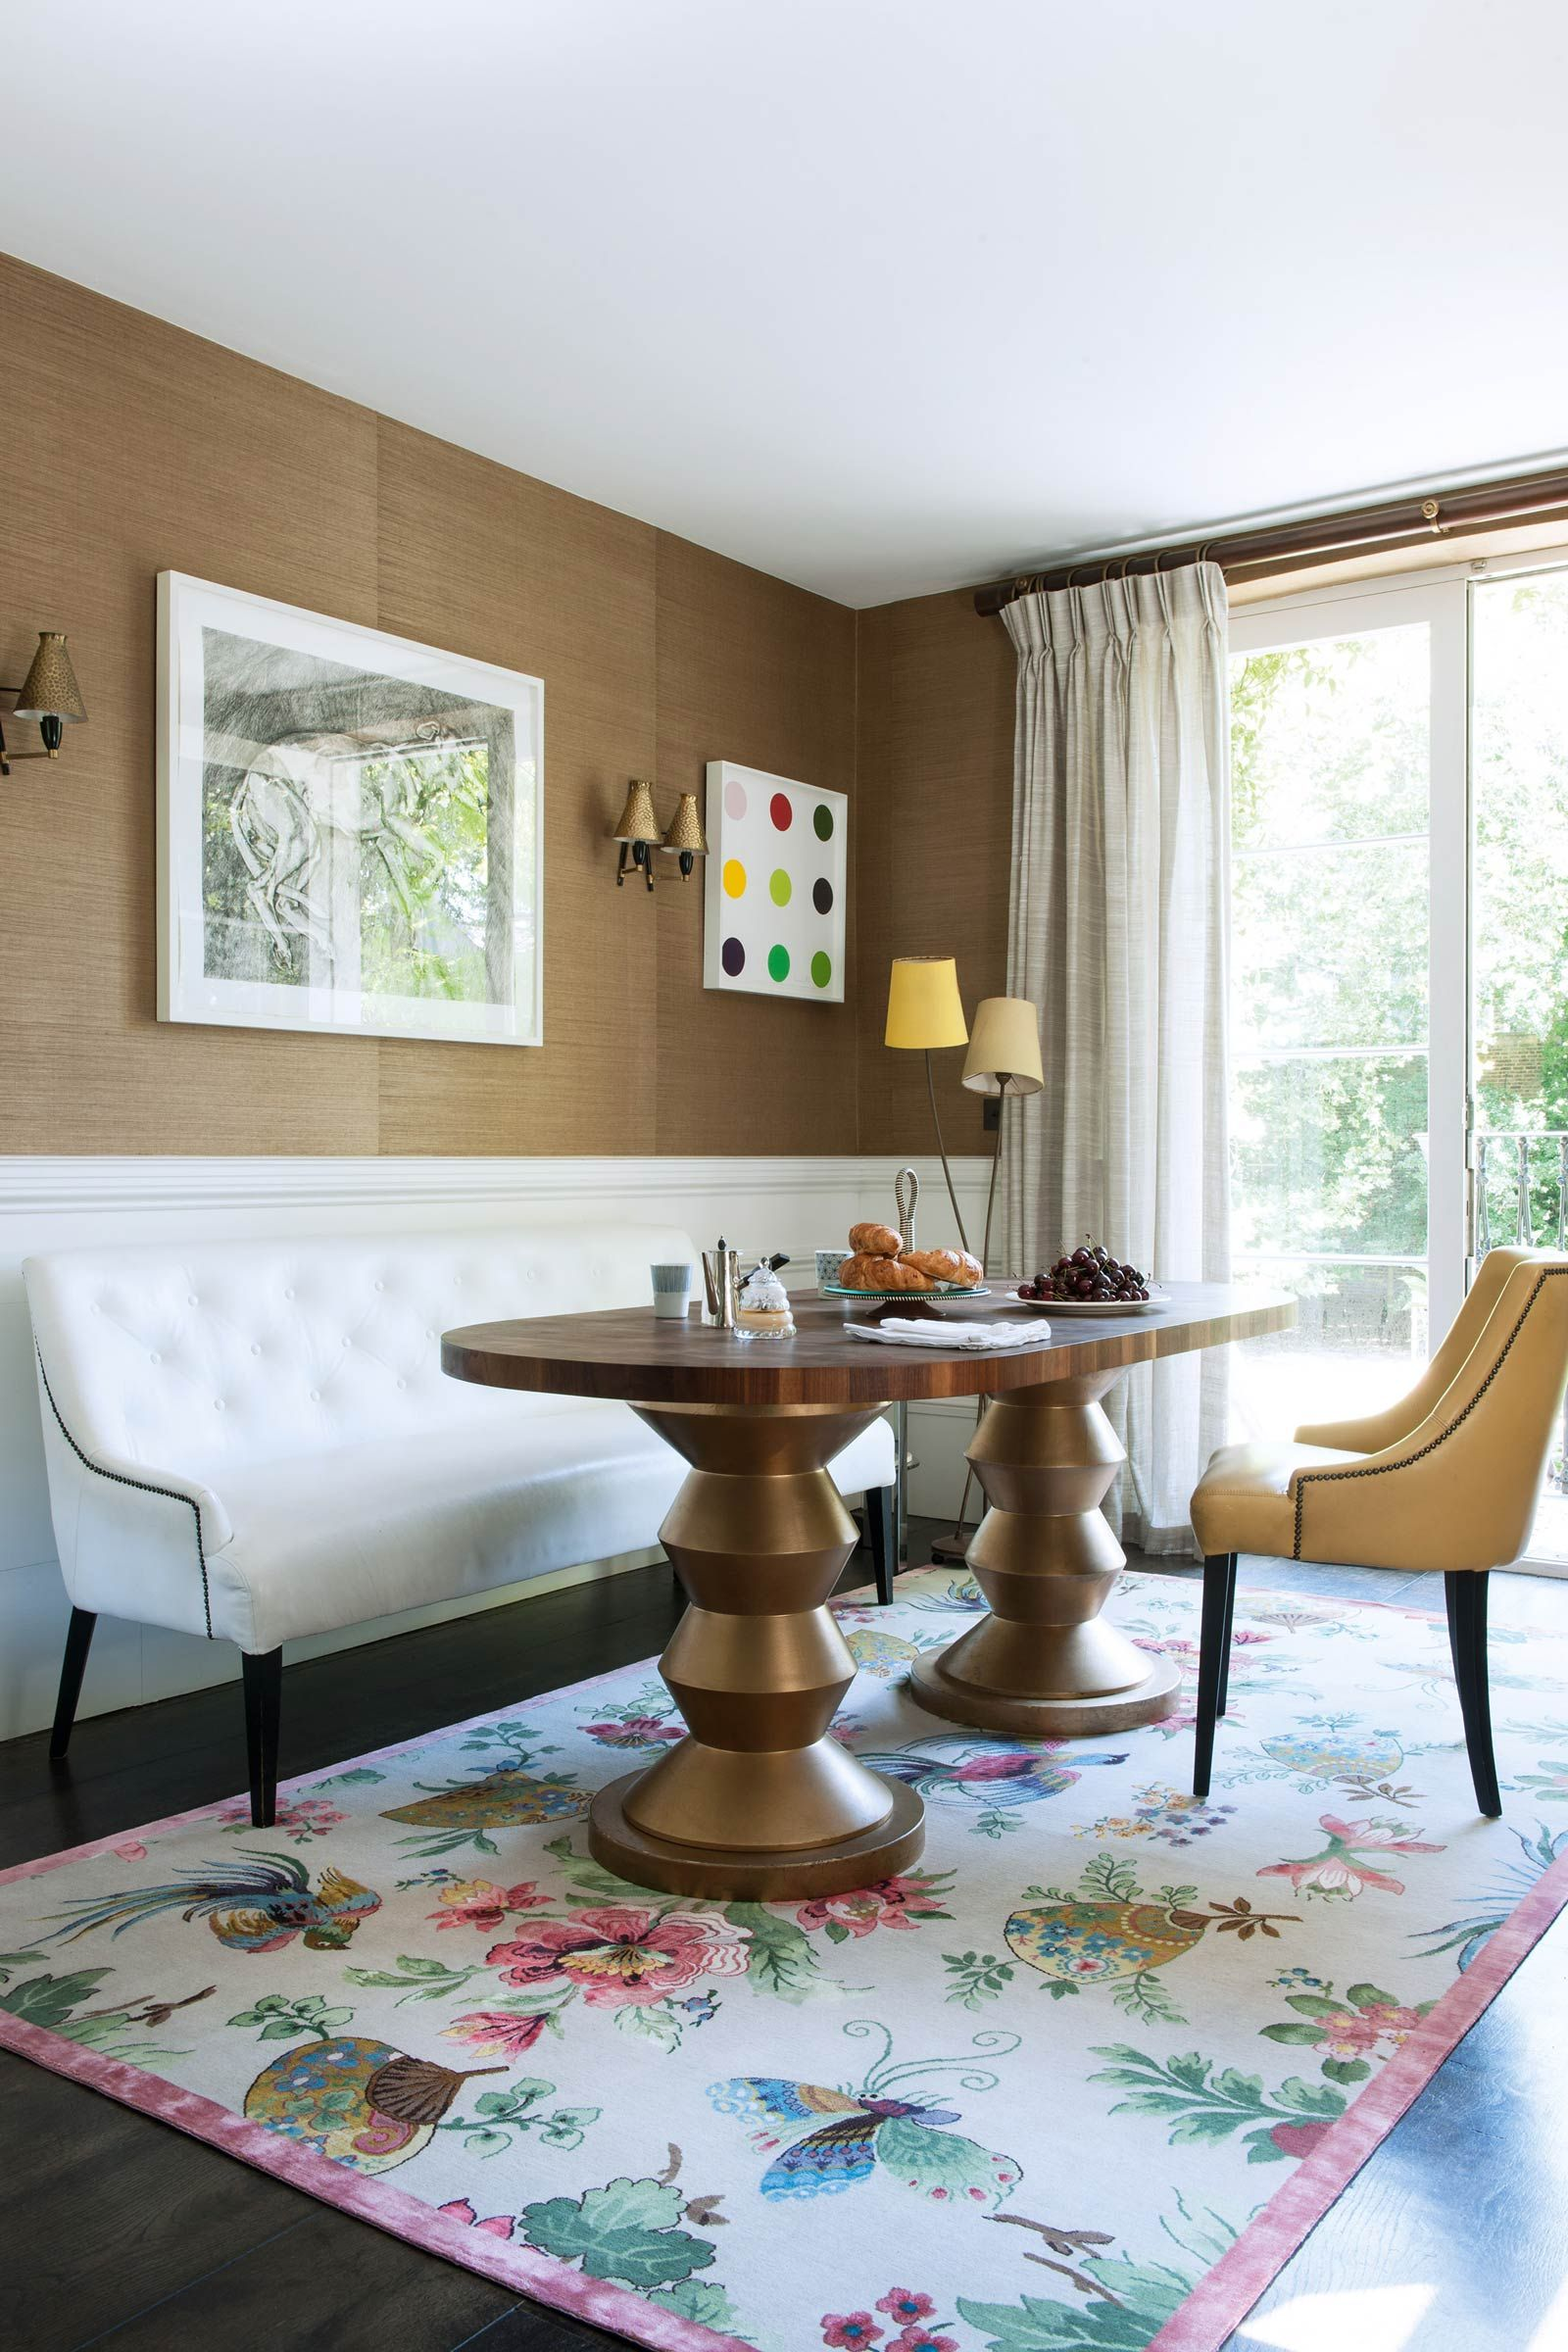 Gallery - The Rug Company | Farbe | Pinterest | Farben